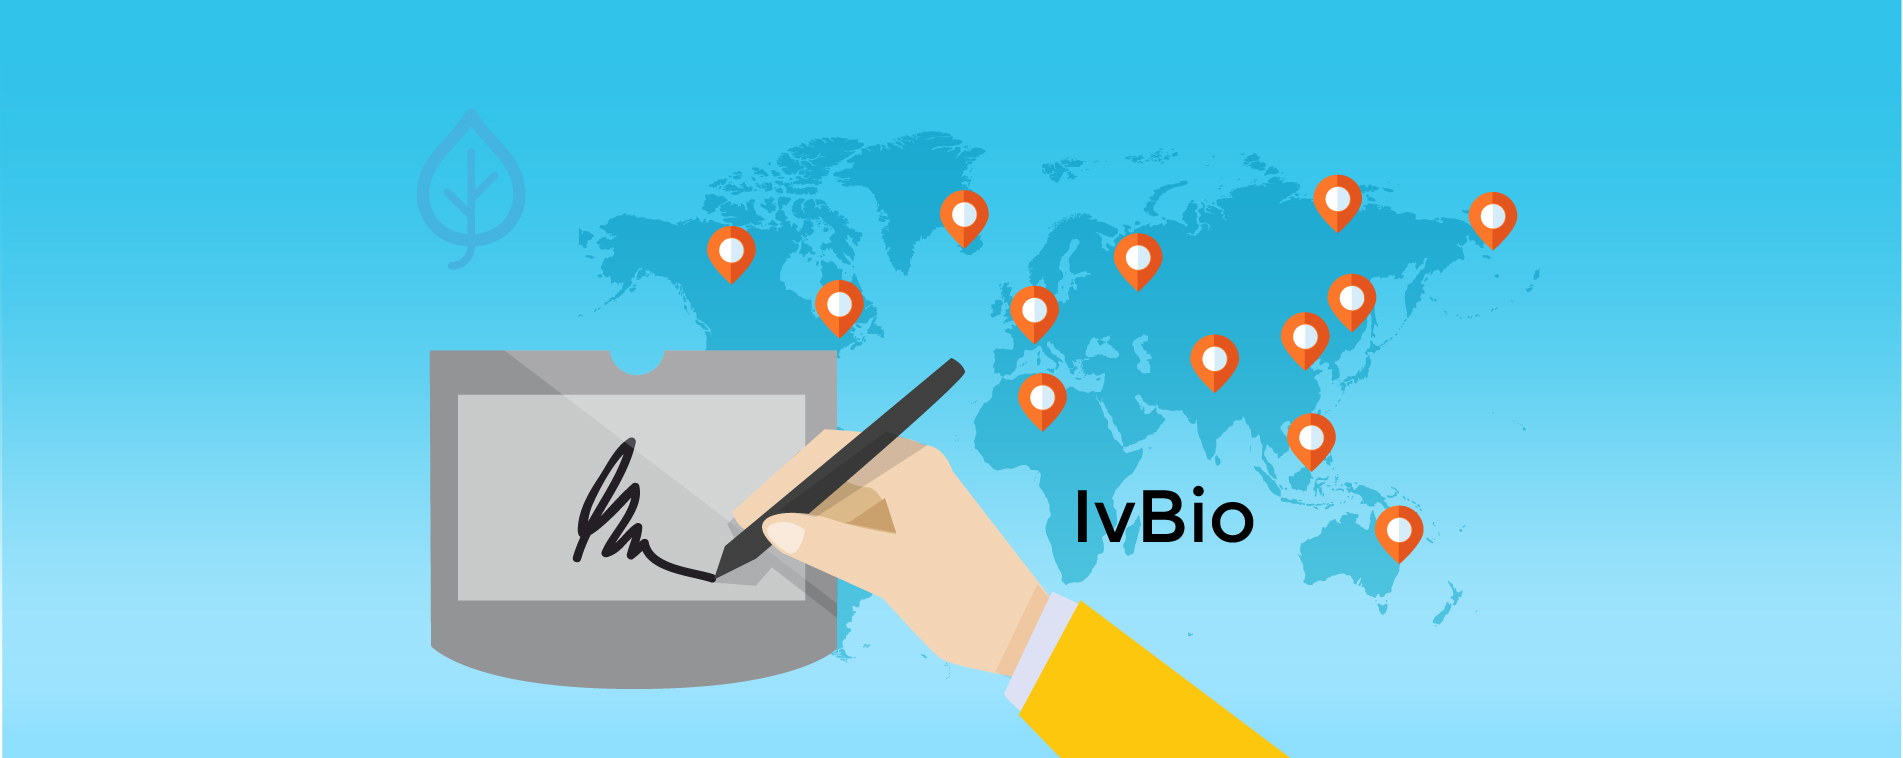 IvBio biometric signature